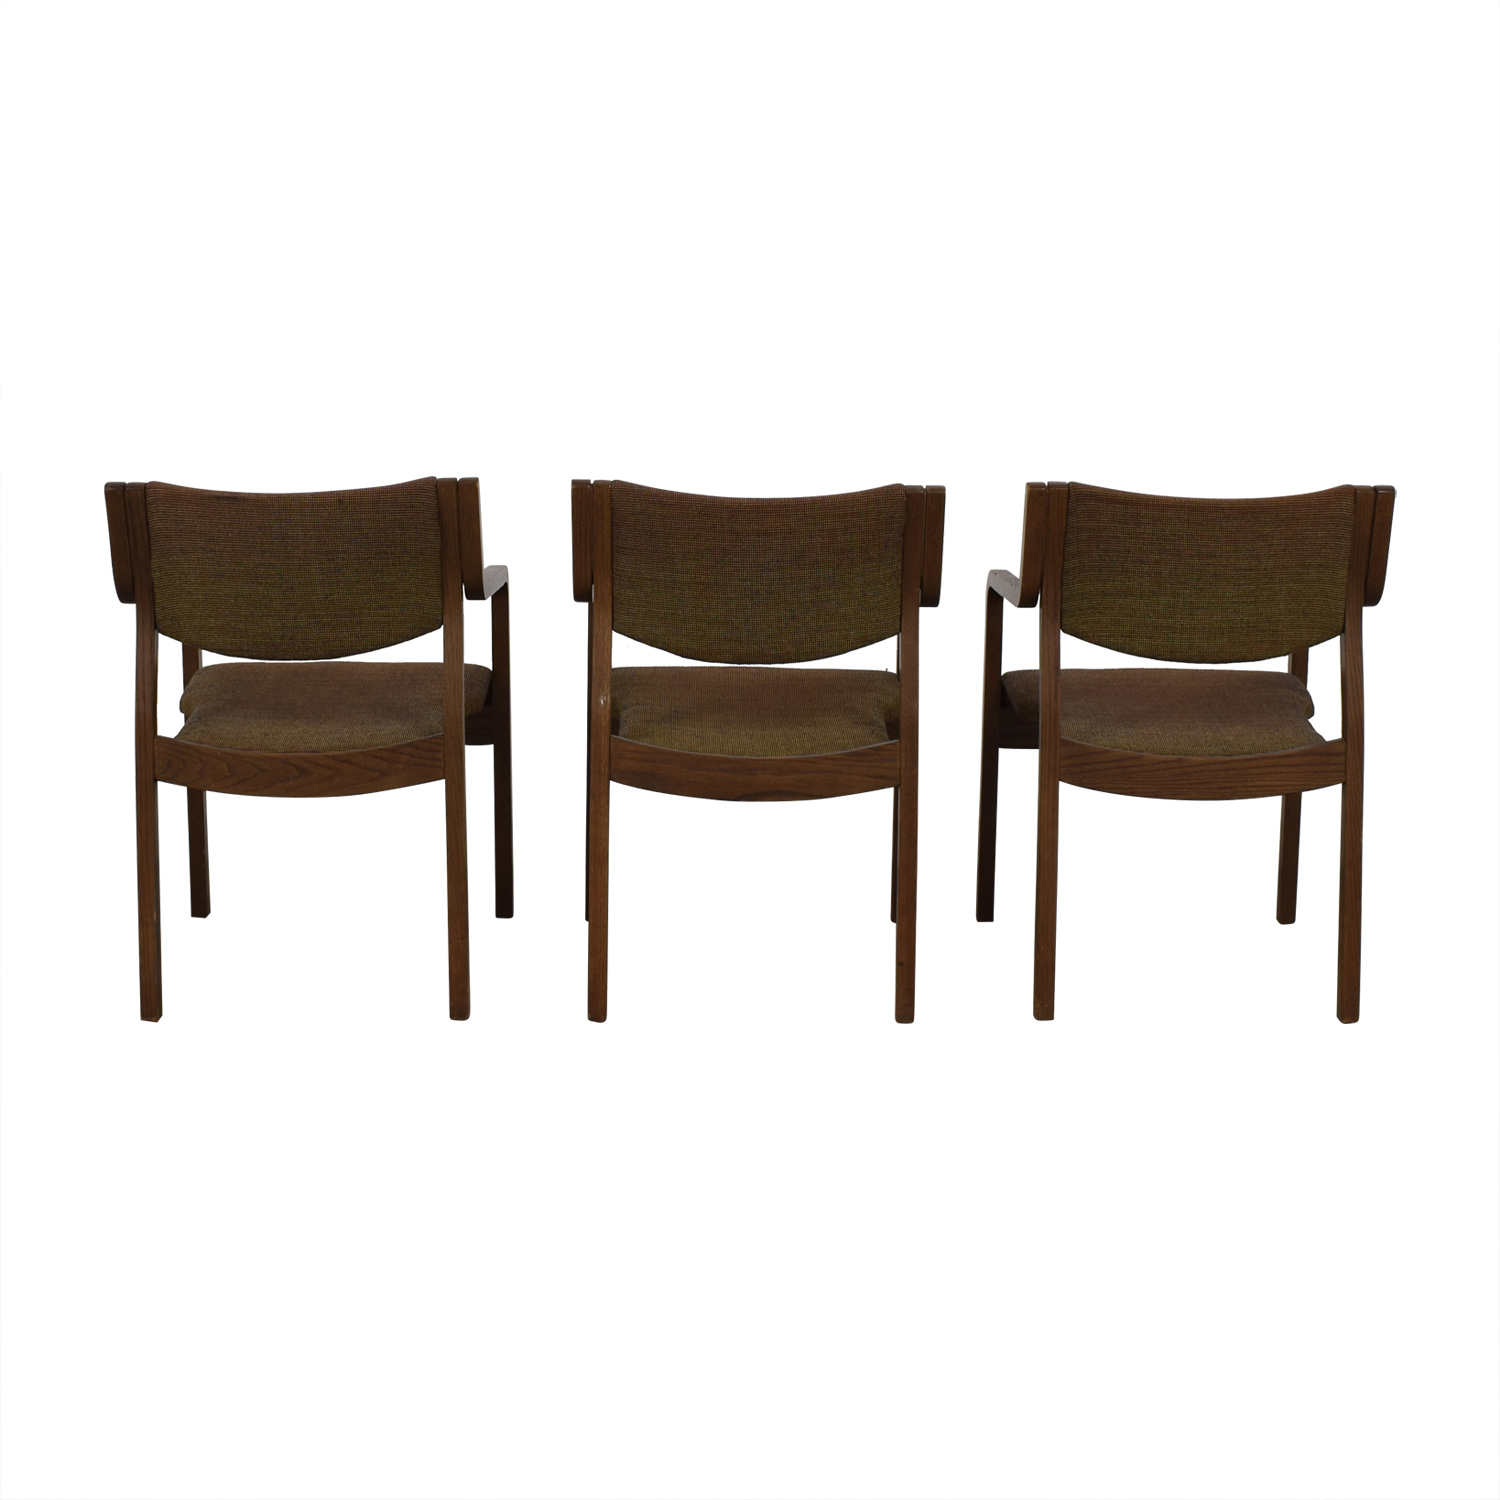 Thonet Bentwood Vintage Chairs Thonet